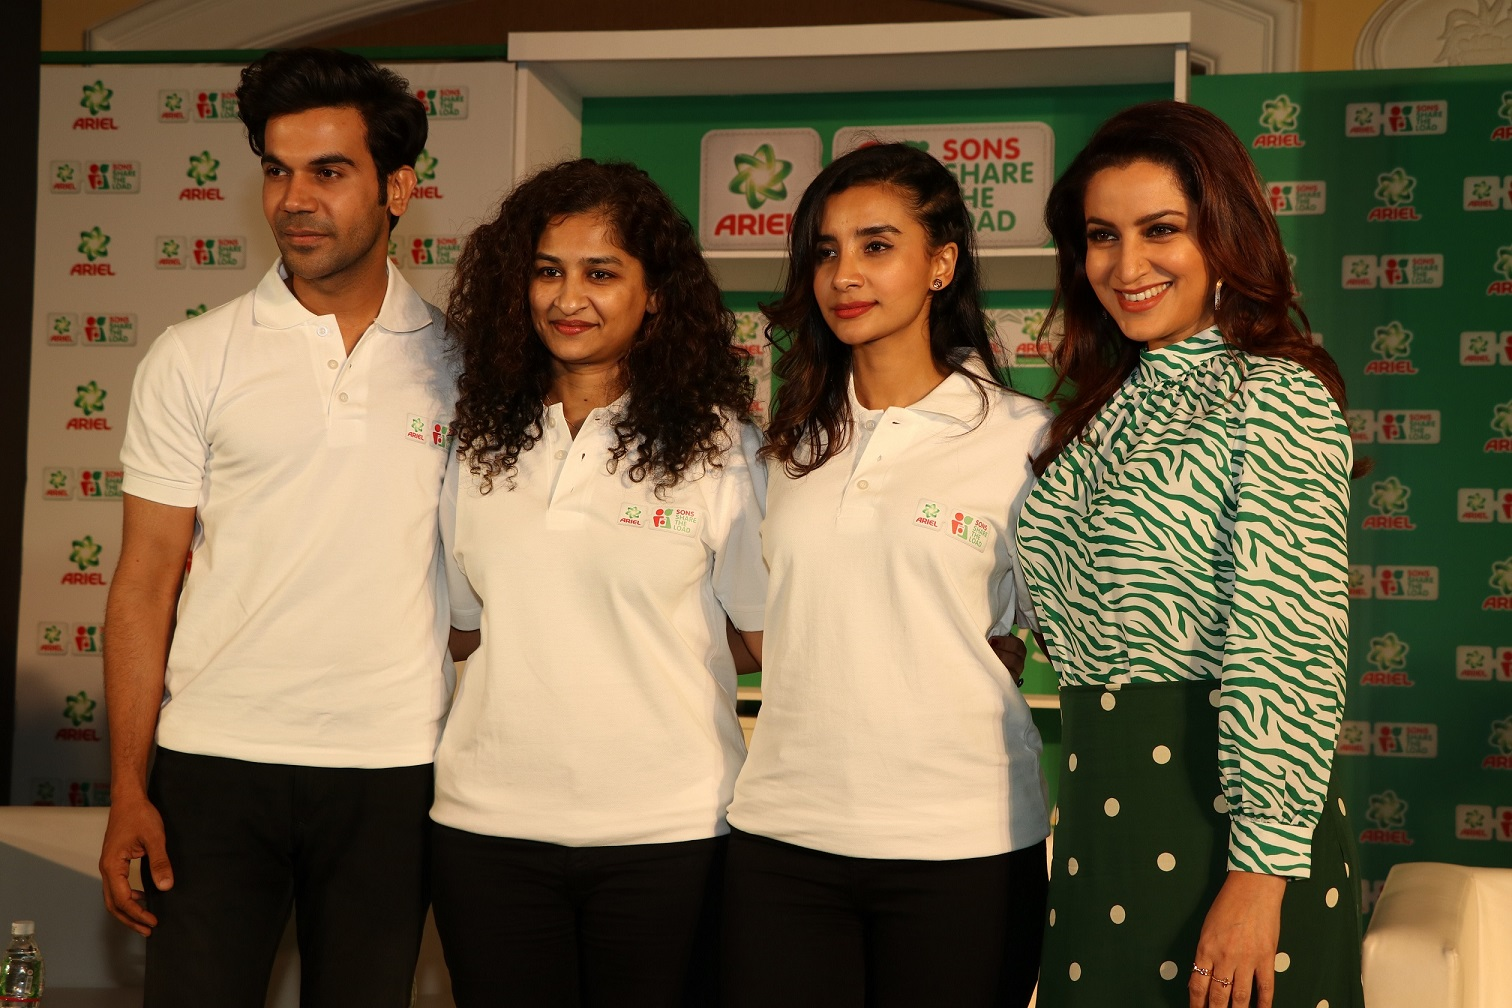 from l-r- Rajkumar Rao, Gauri Shinde, Patralekha and Tisca Chopra at the panel dicussion for Ariel's Sons #SharetheloadI